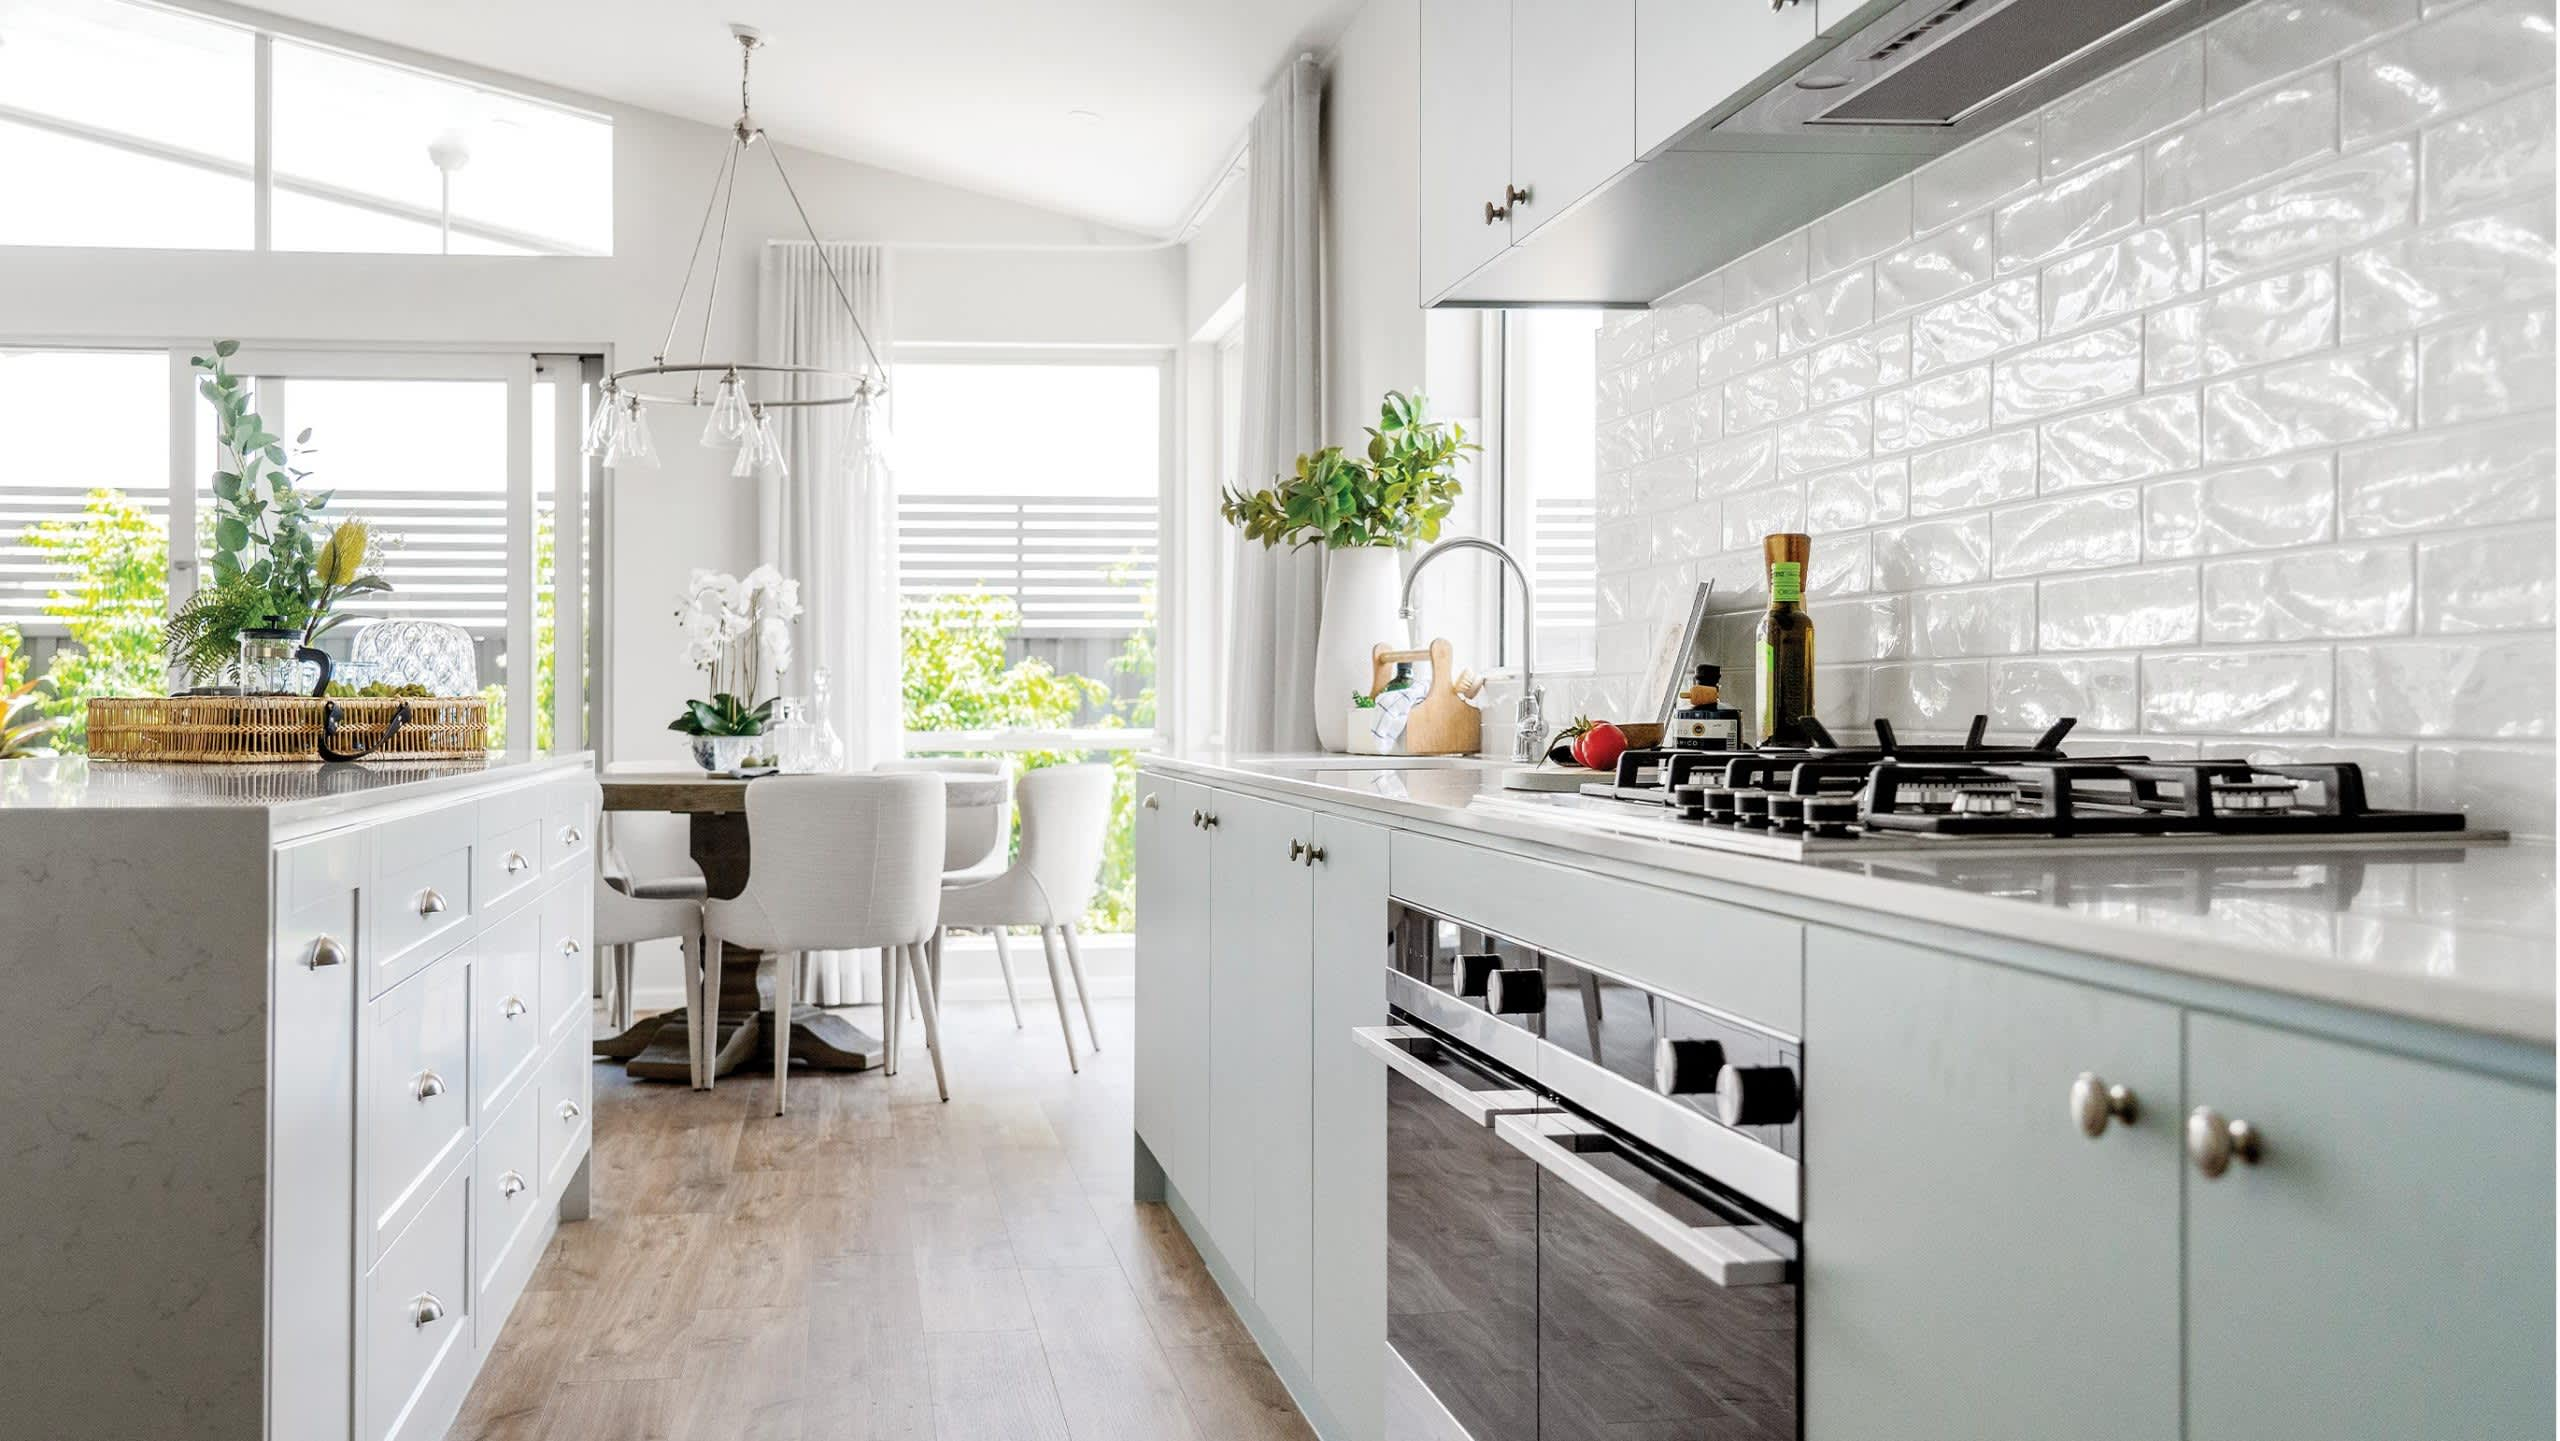 10 things to consider when designing a new home